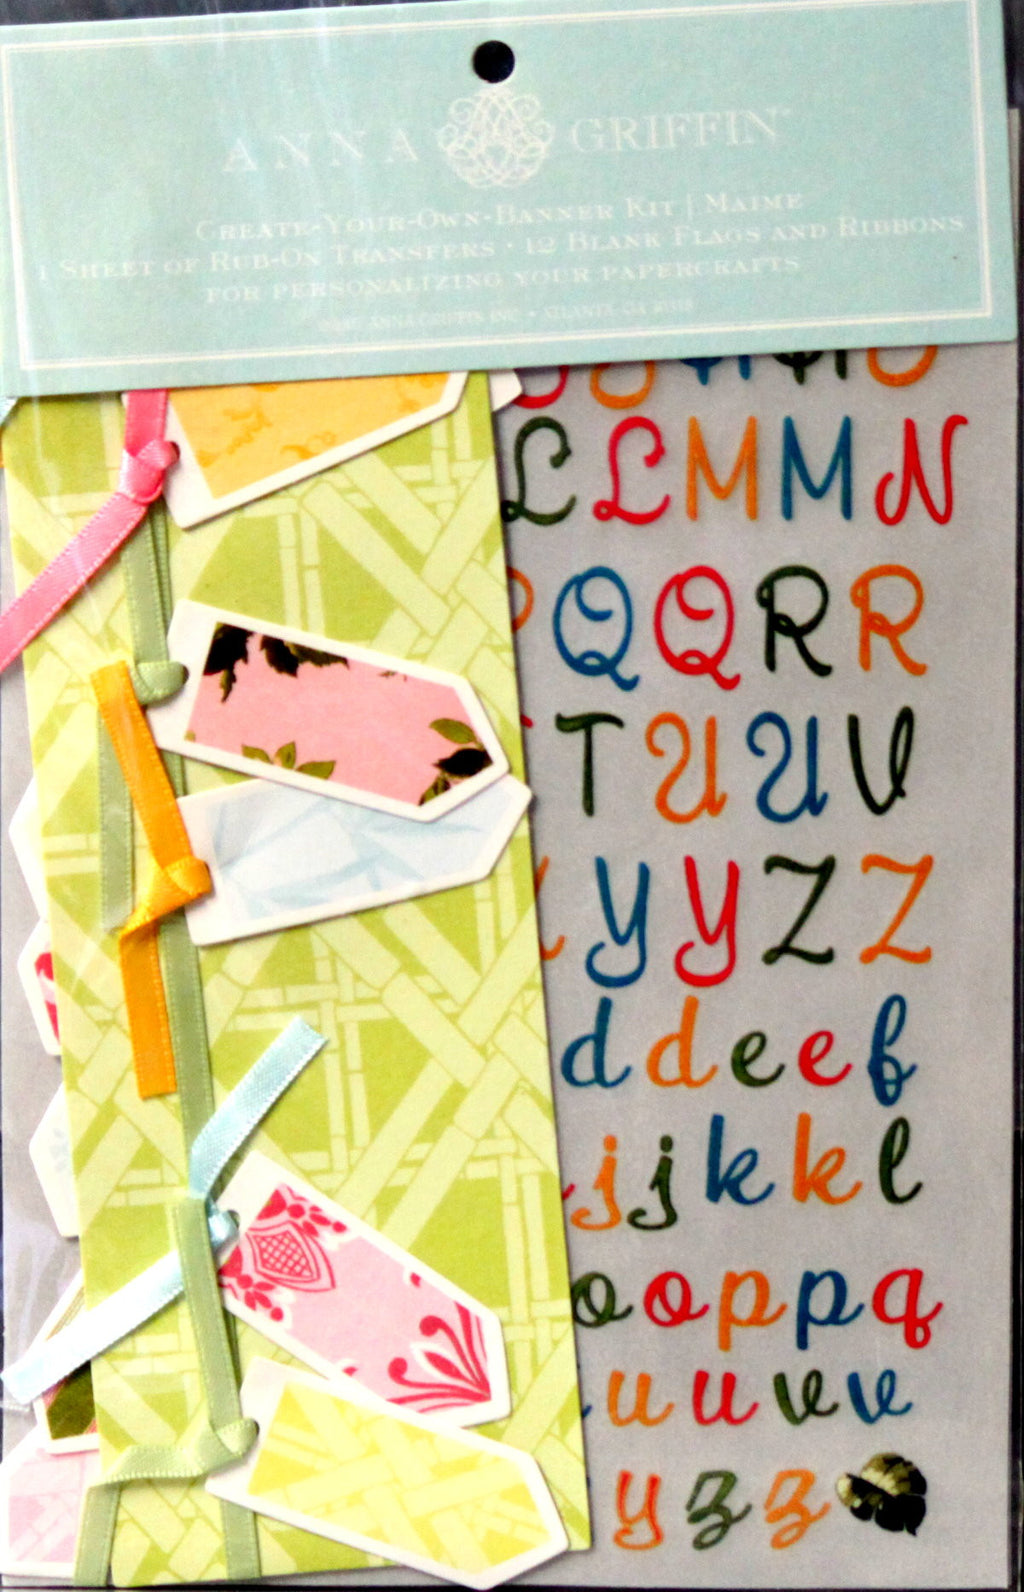 Anna Griffin Create Your Own Banner Kit/Maime - SCRAPBOOKFARE